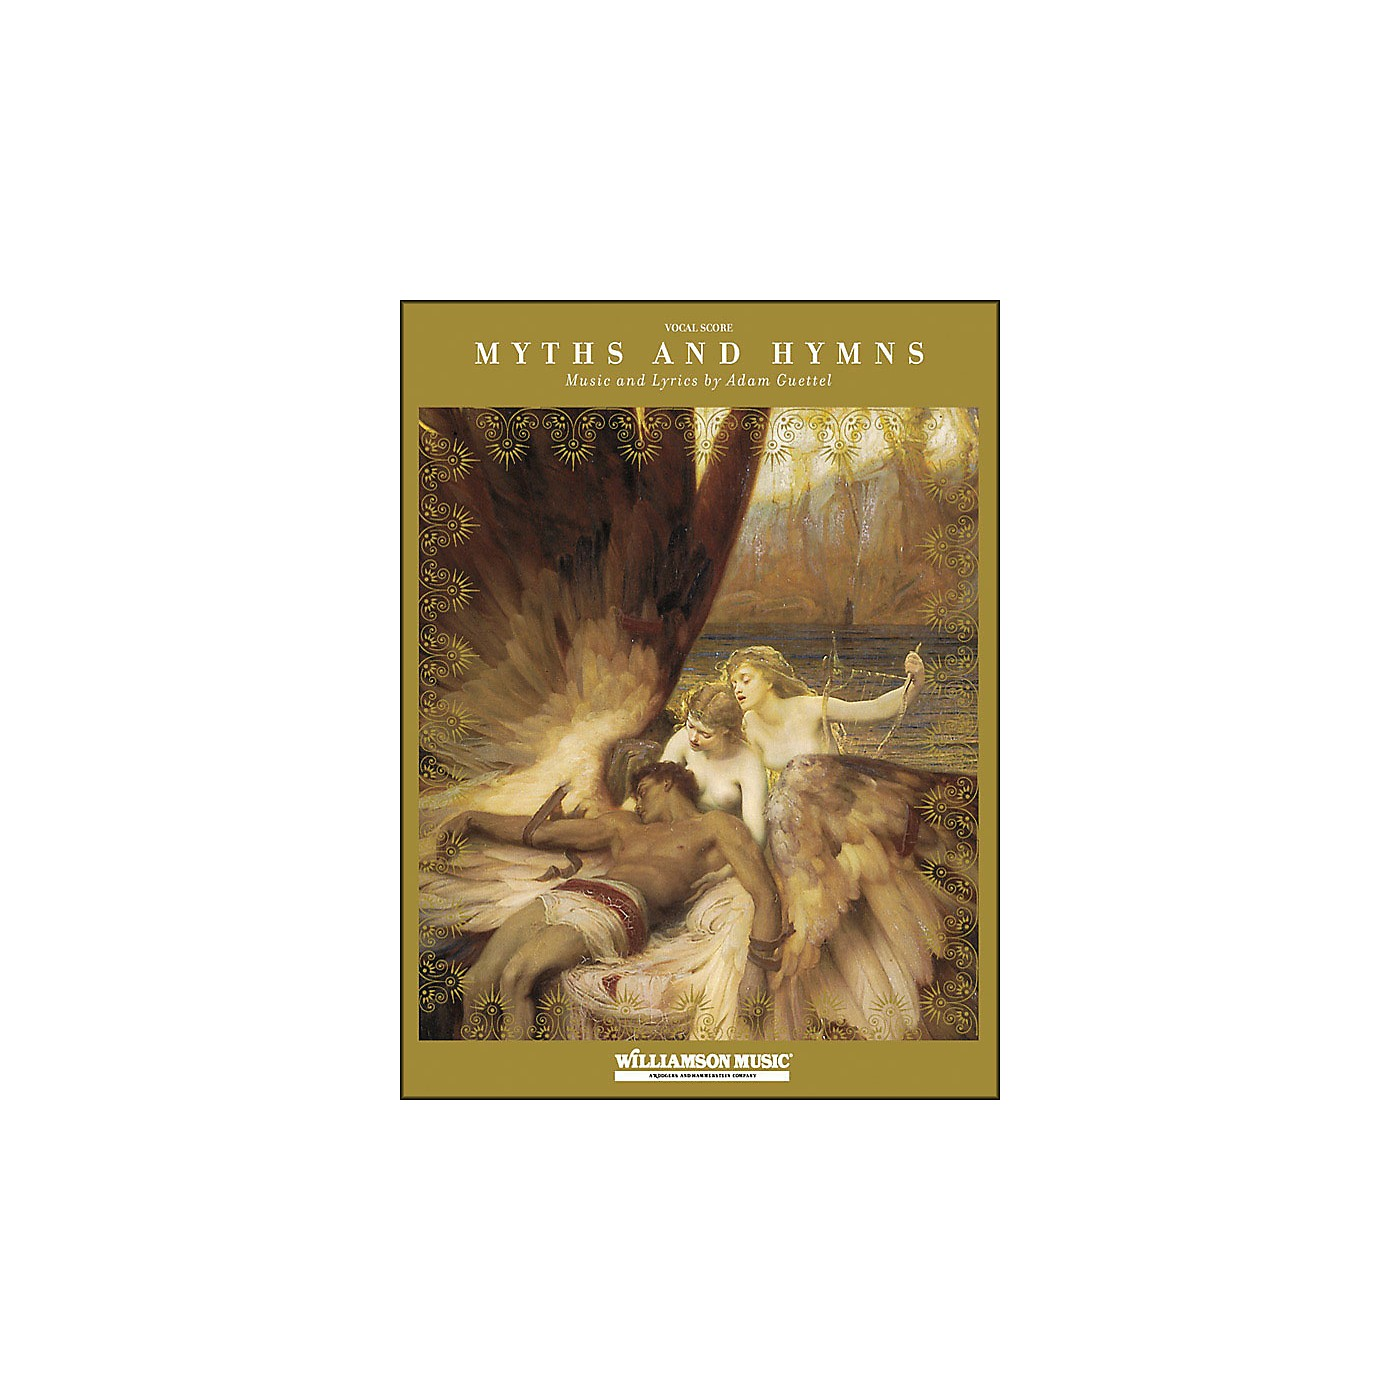 Hal Leonard Myths And Hymns Vocal Selections arranged for piano, vocal, and guitar (P/V/G) thumbnail